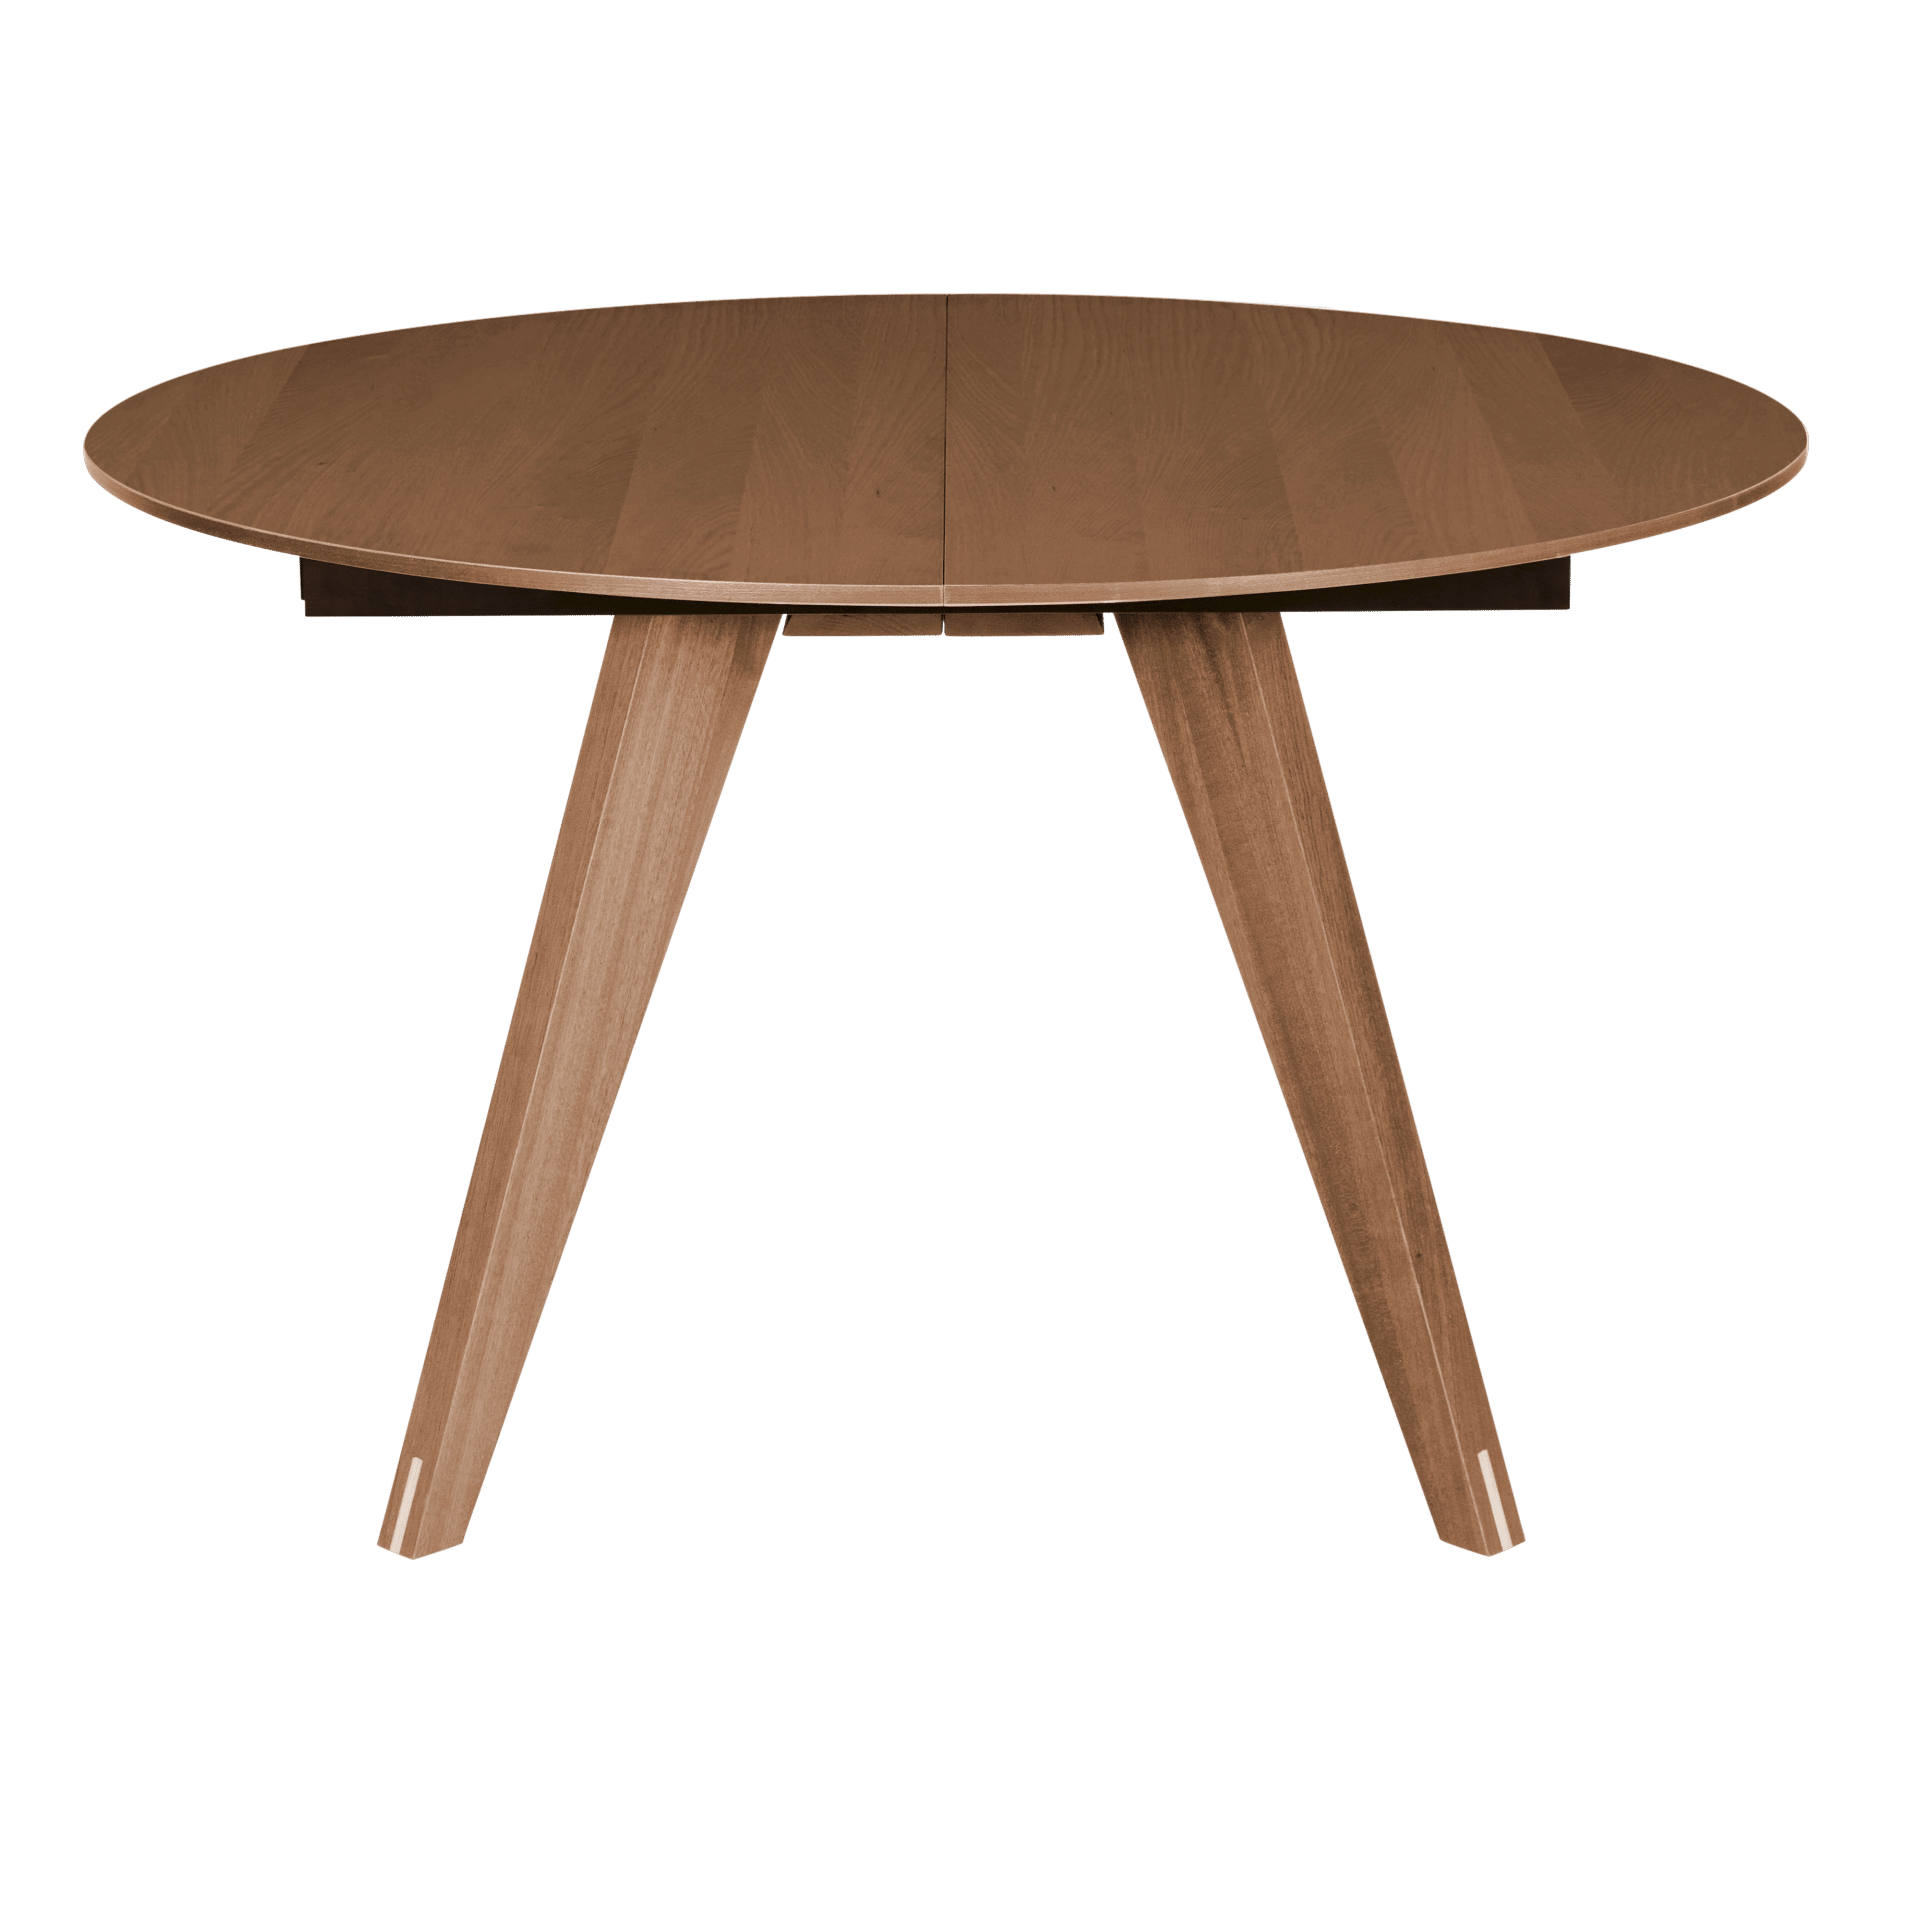 The Mood round dining table walnut by Bolia boasts a top finish